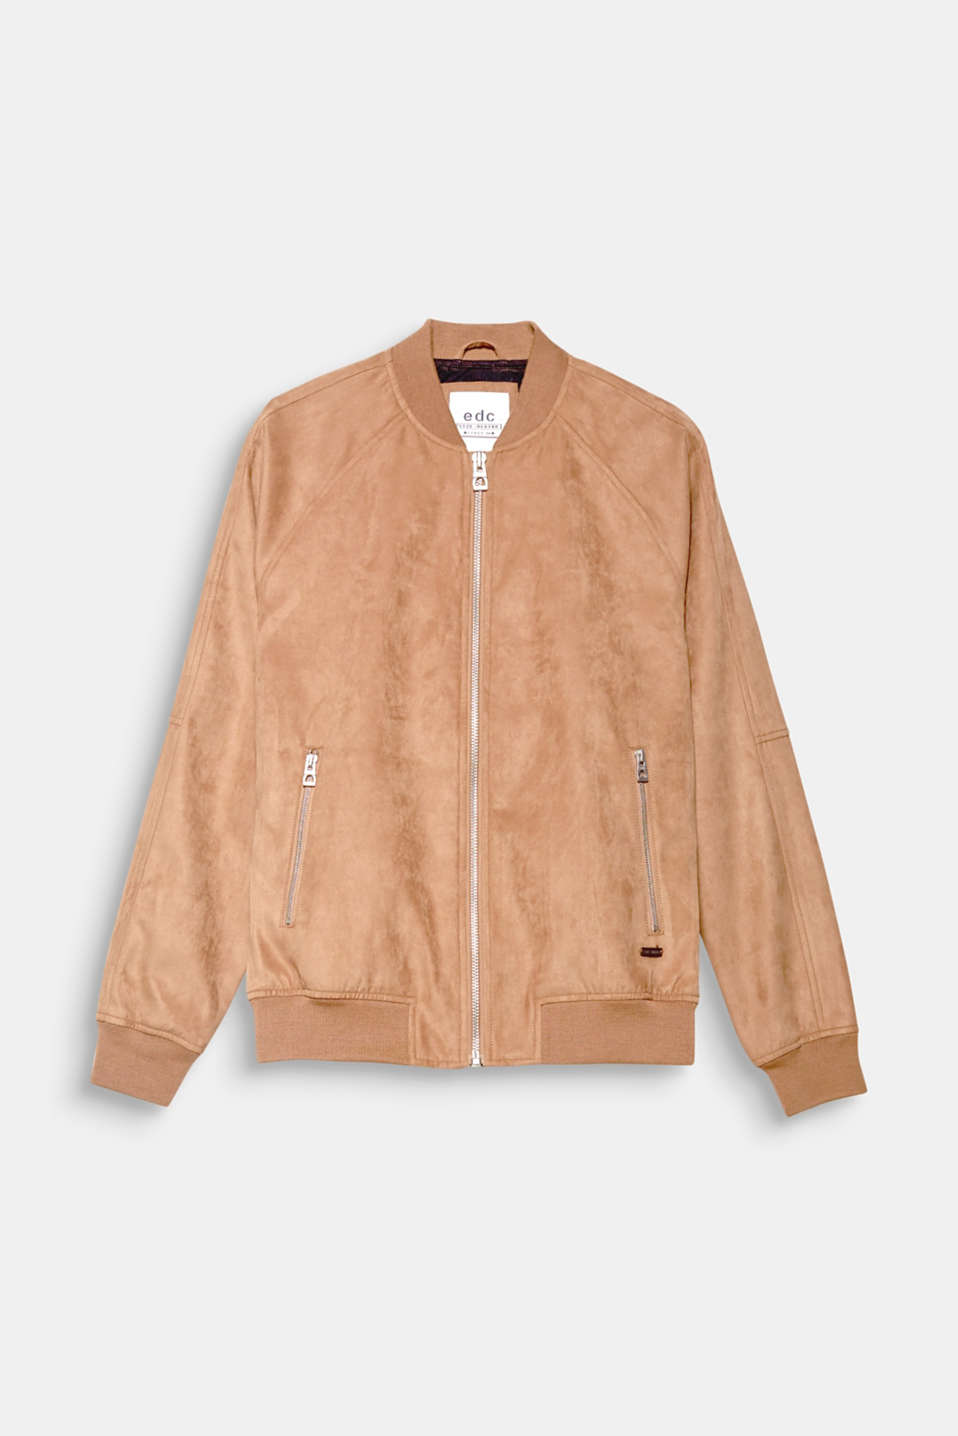 The soft faux suede and sporty cut make this bomber jacket the perfect companion for between seasons.